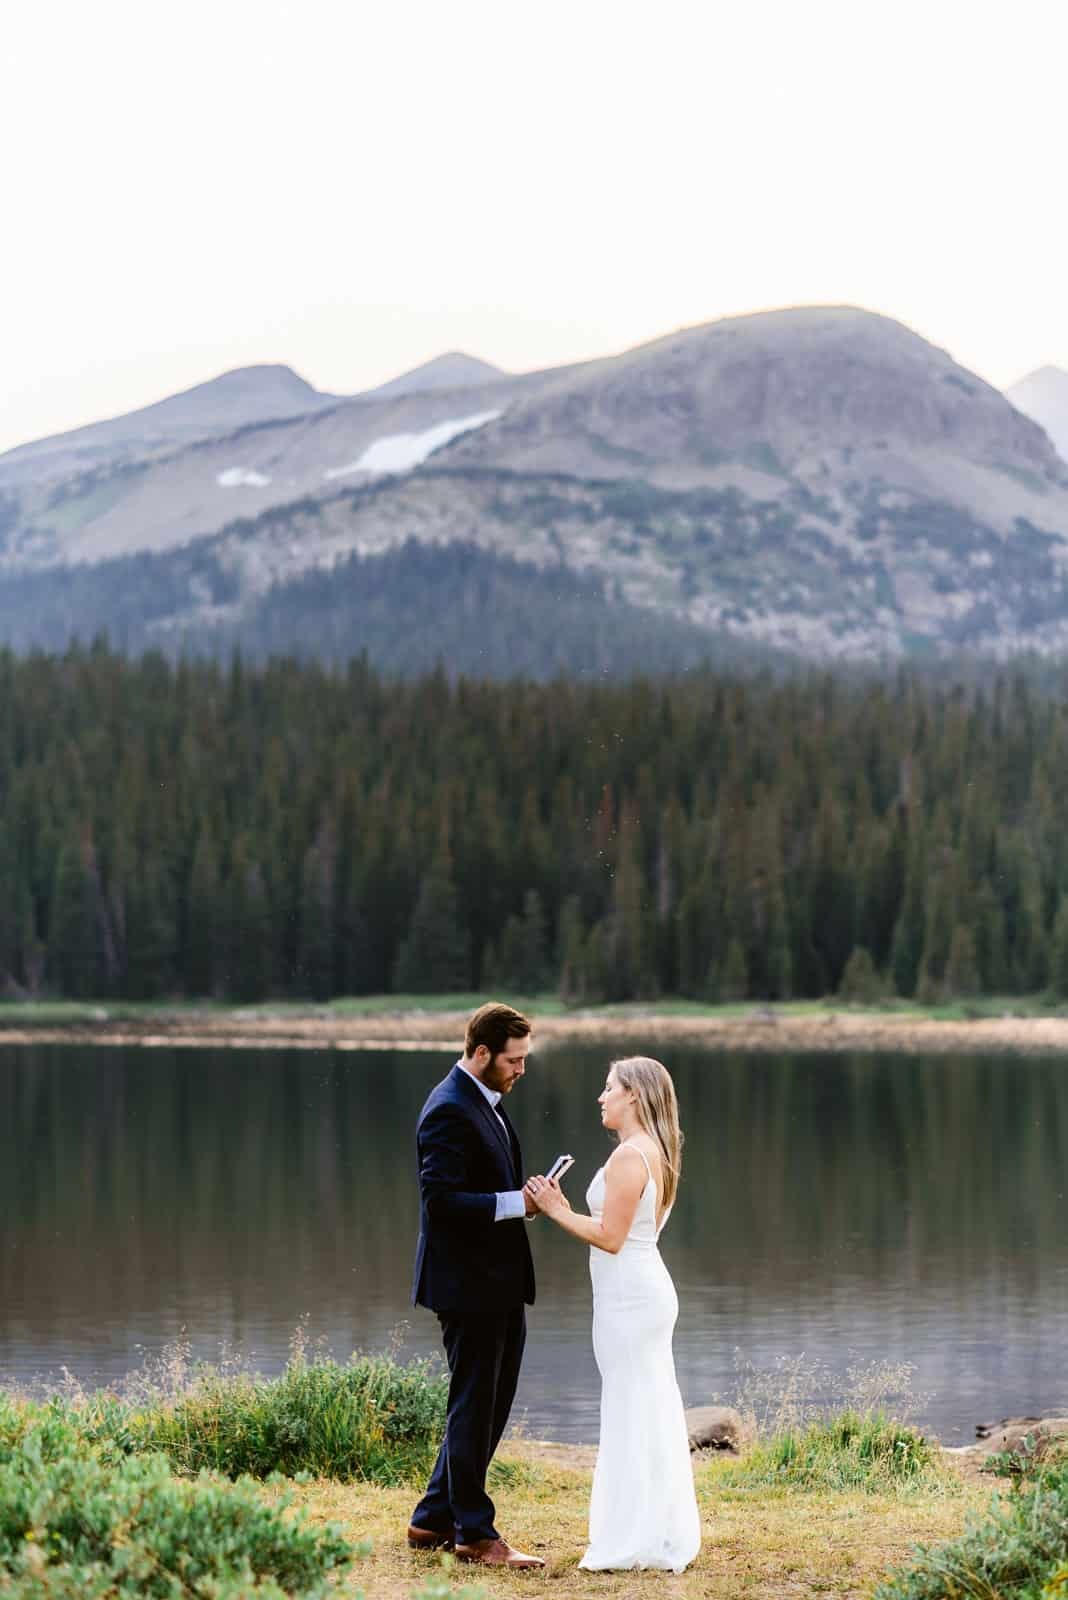 Reading Vows on a mountainside | Josie V Photography